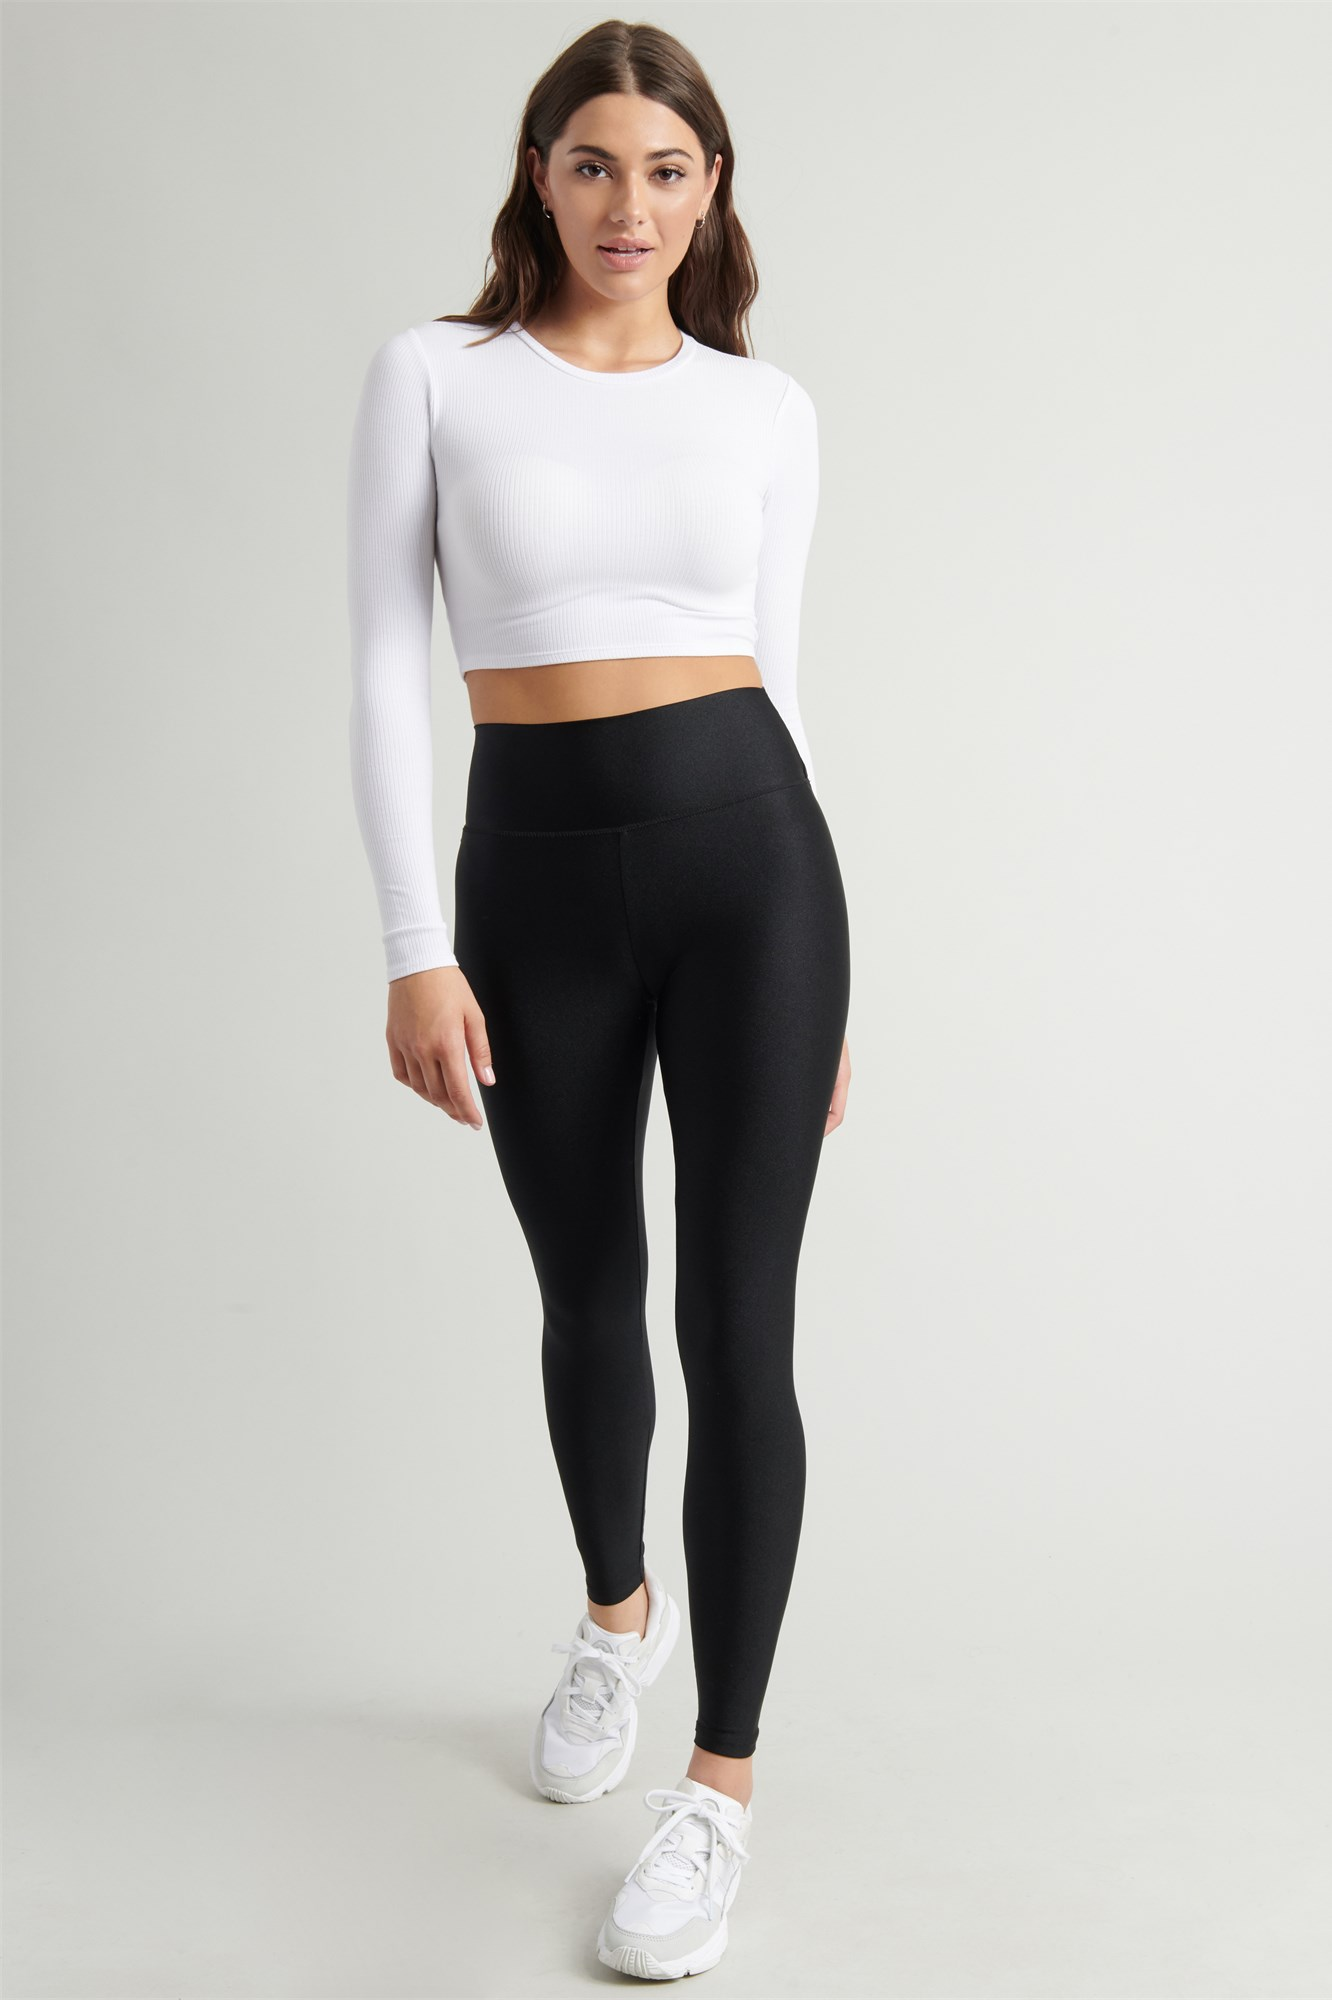 Image 2 of Luxe Shiny High Rise Legging